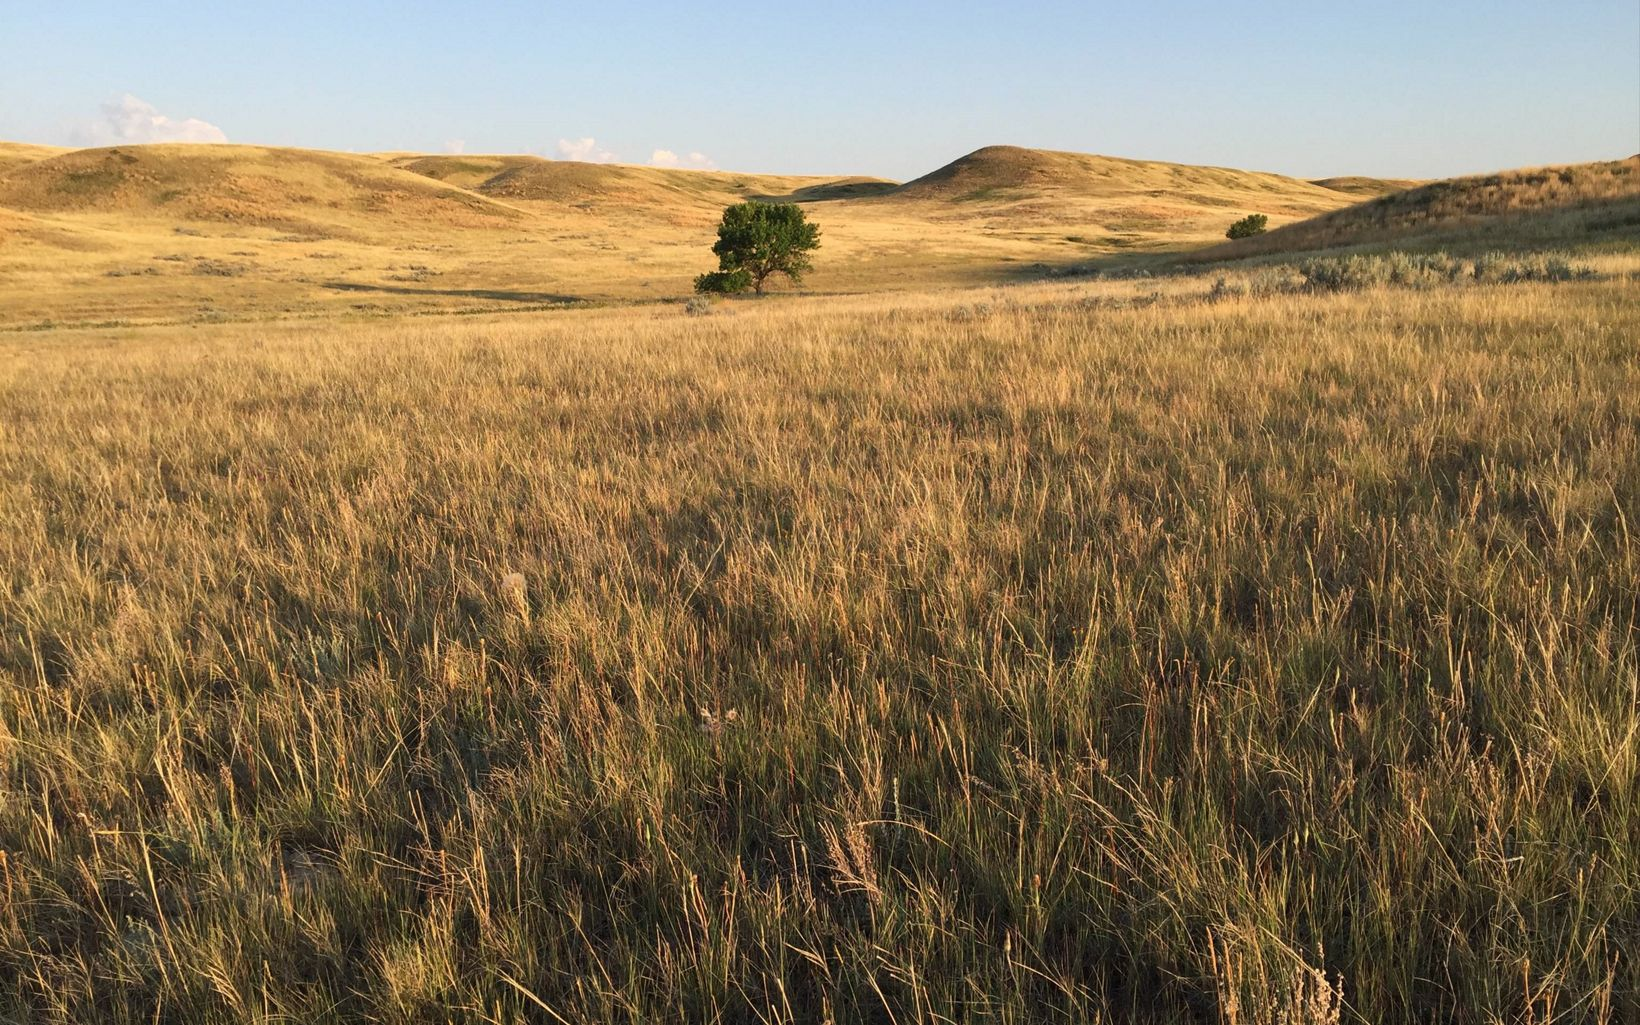 Private ranchland now protected adjacent to Bitter Creek Wilderness Study Area in Montana's Northern Great Plains